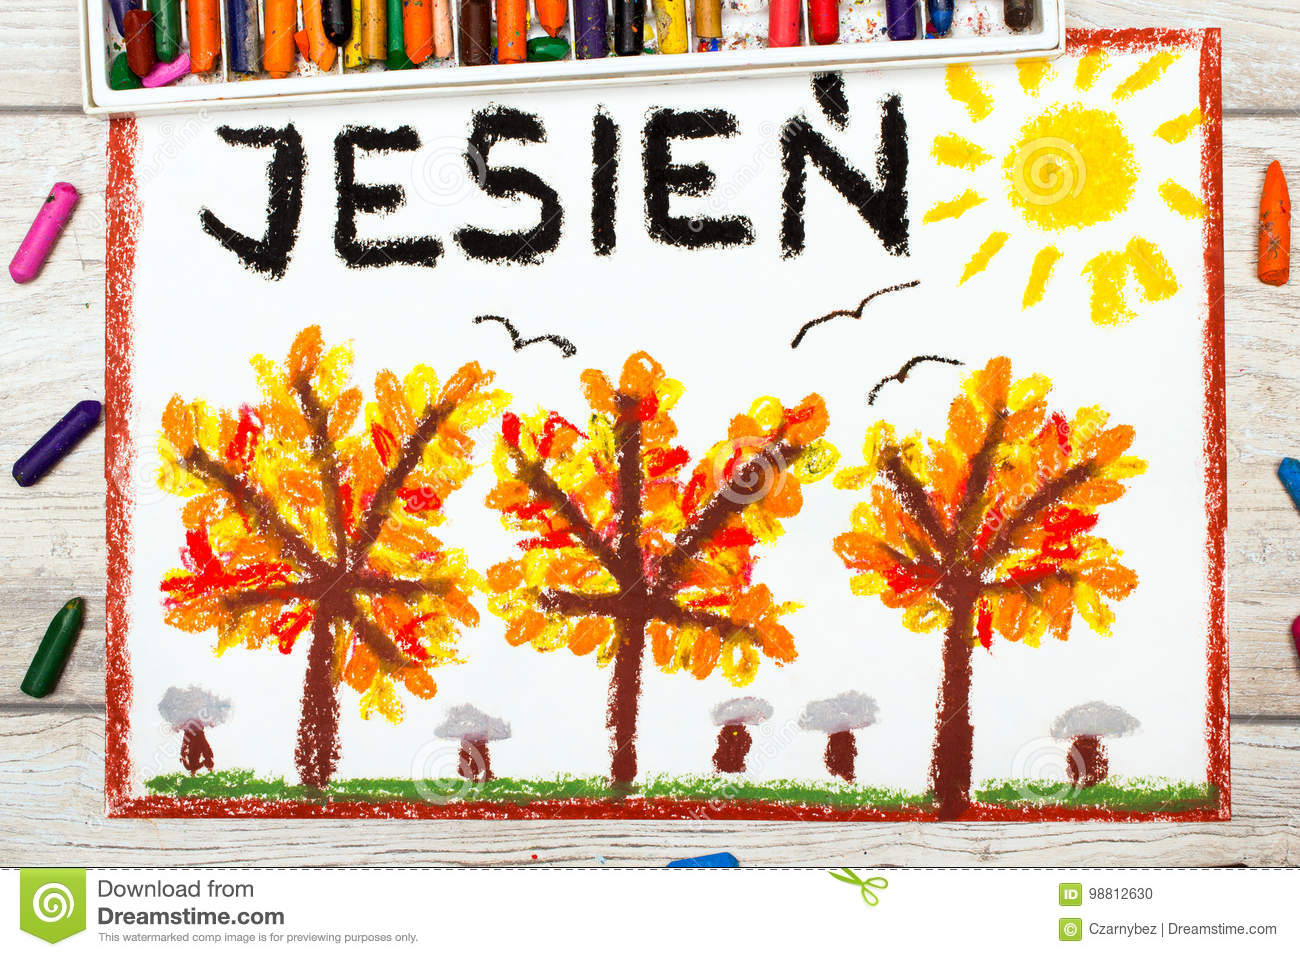 Drawing: Polish word AUTUMN and trees with yellow, red and orange leaves